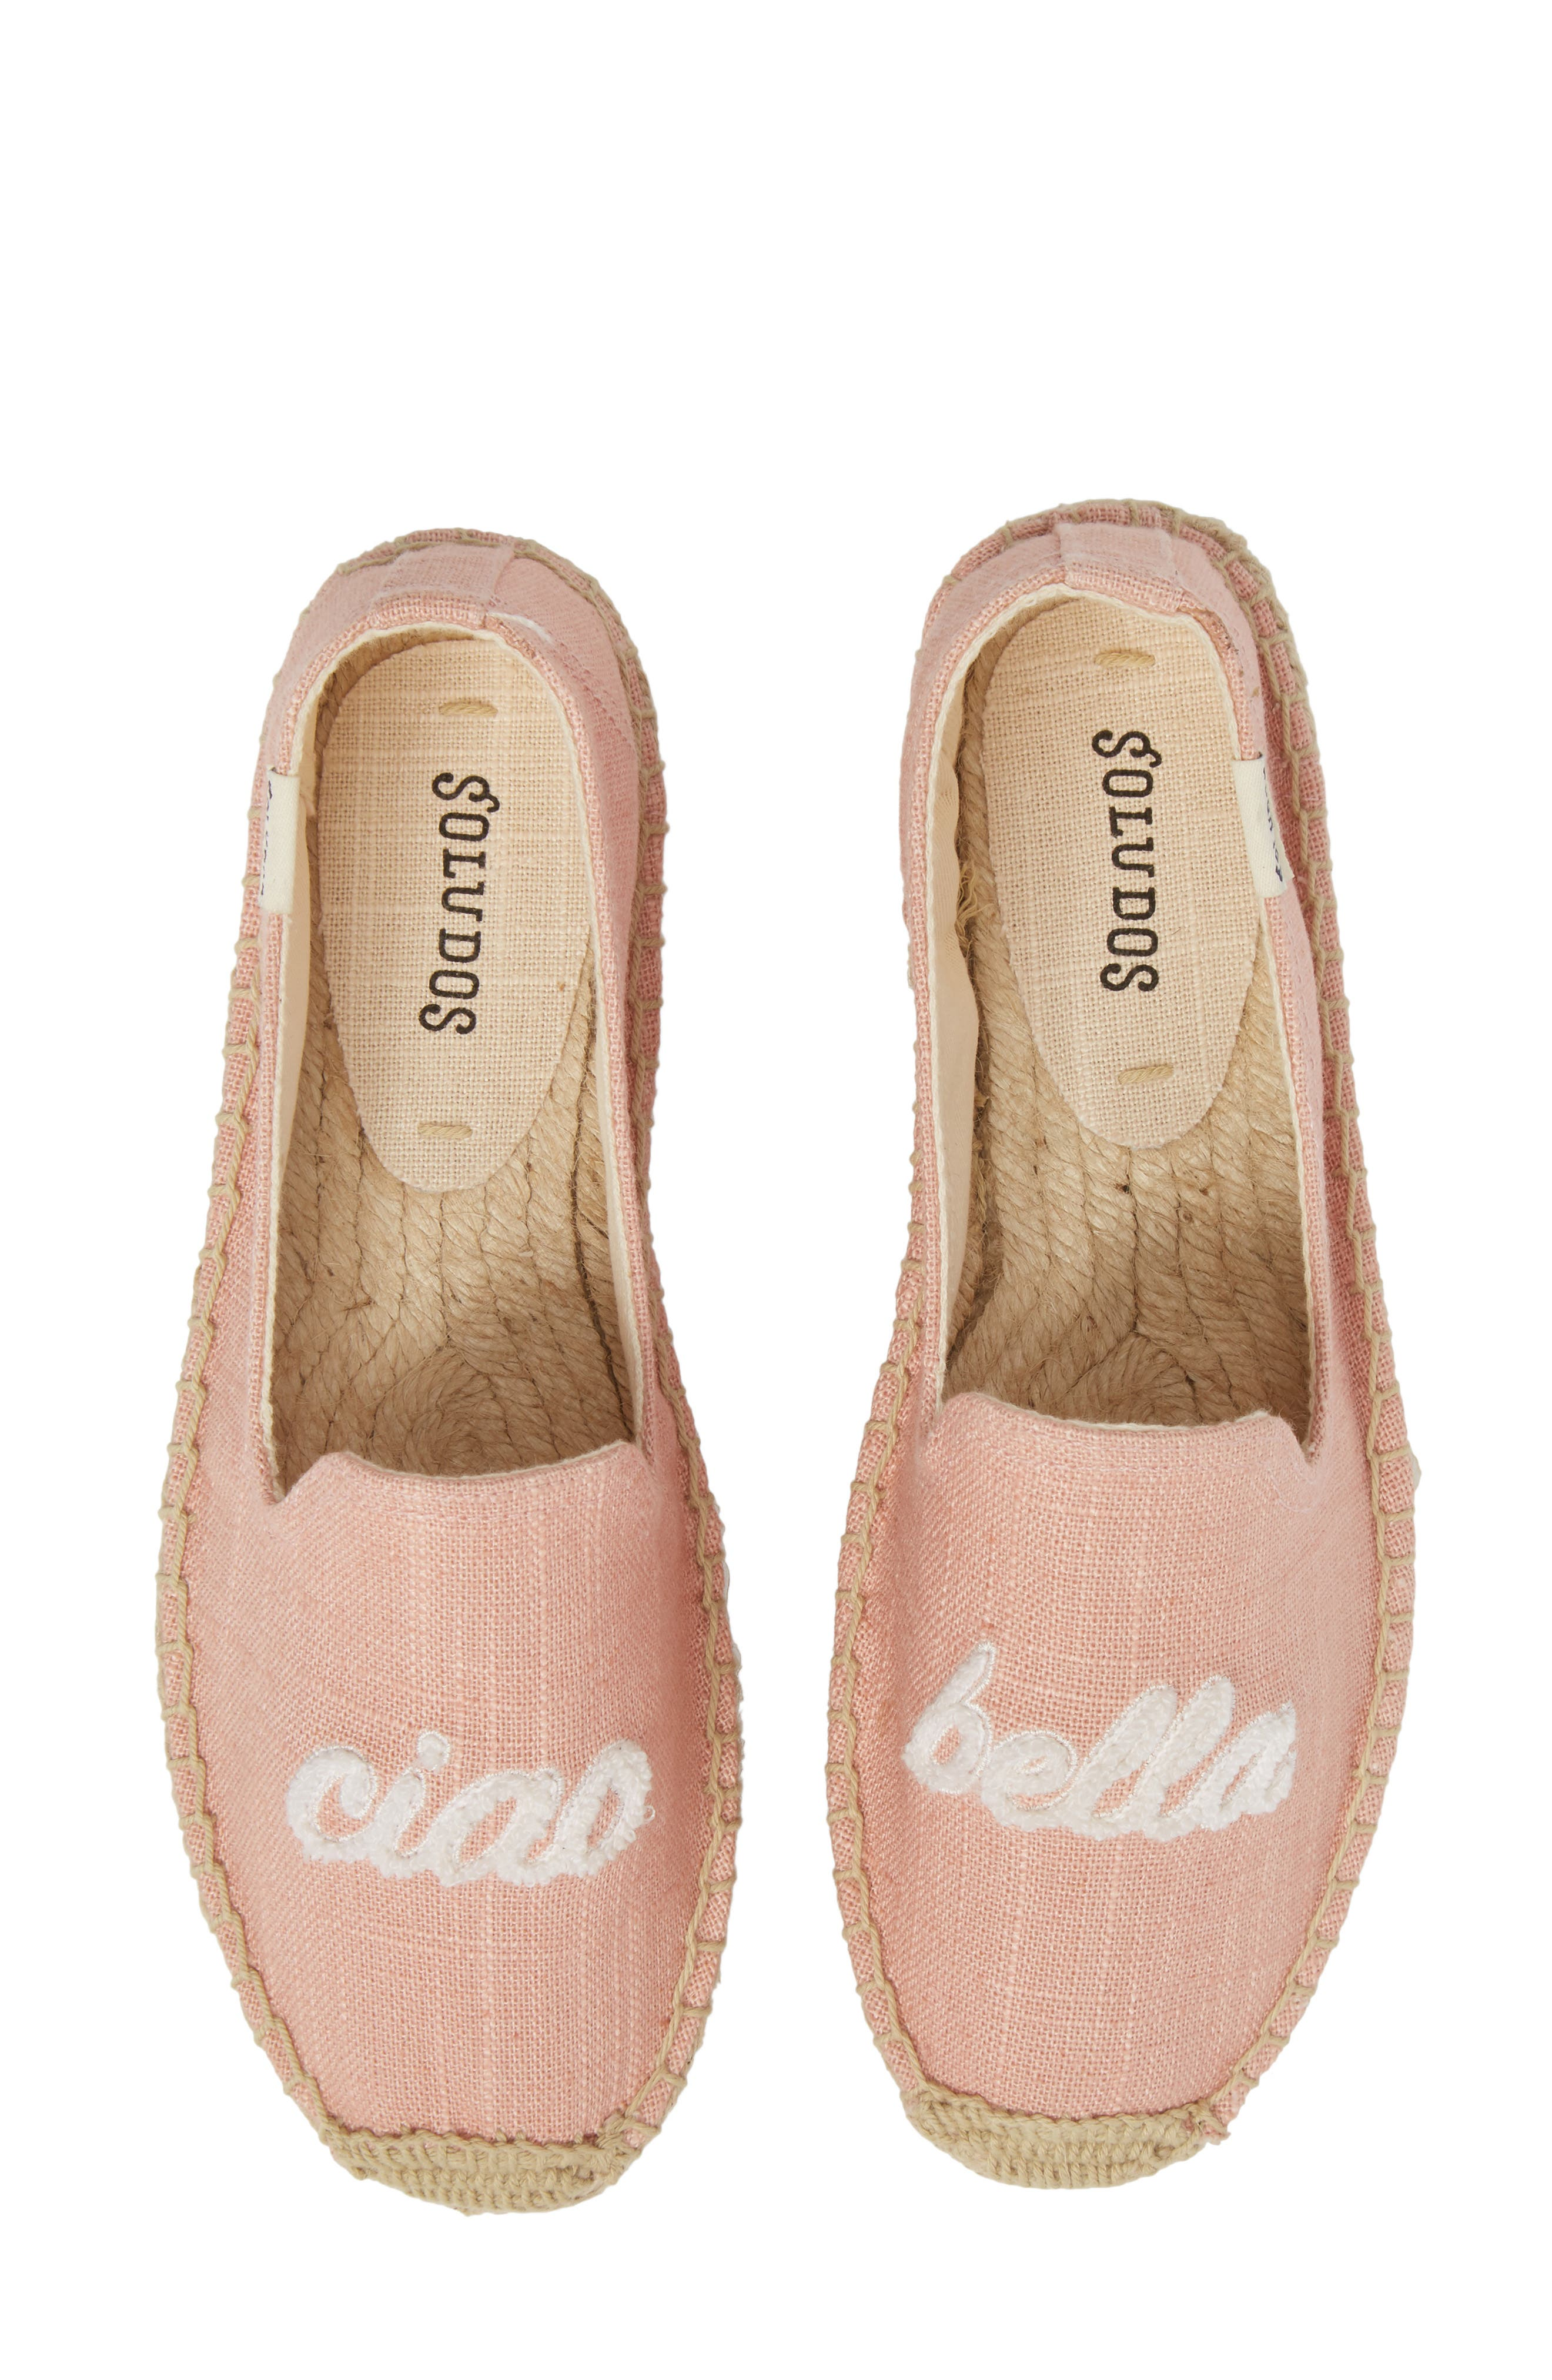 Main Image - Soludos Ciao Bella Espadrille Flat (Women)